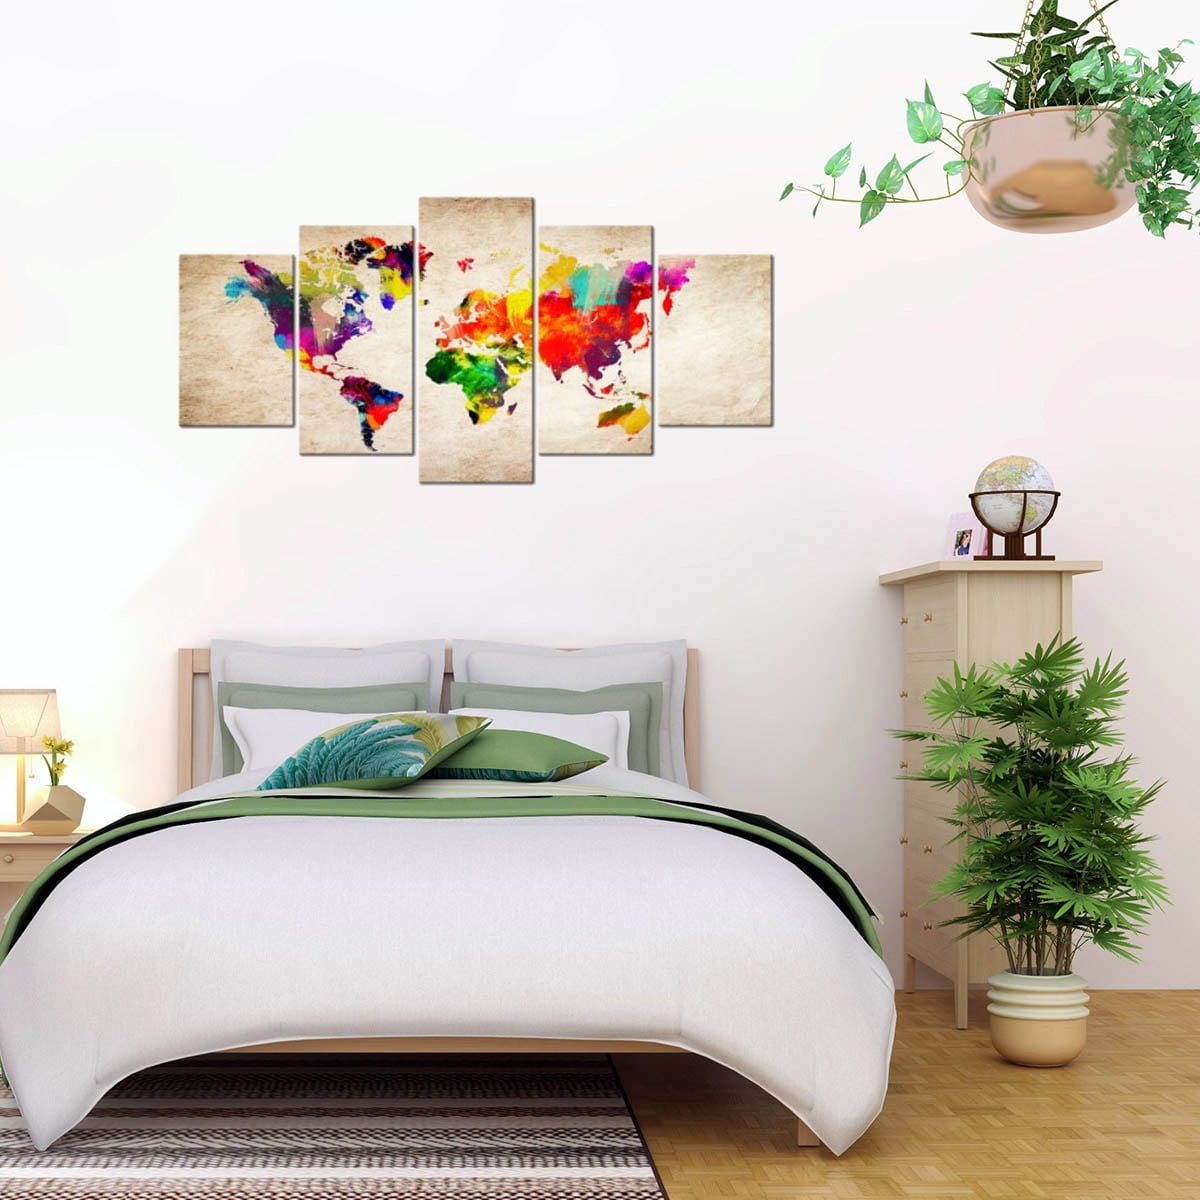 World map canvas print with a big size to create a modern wall decoration